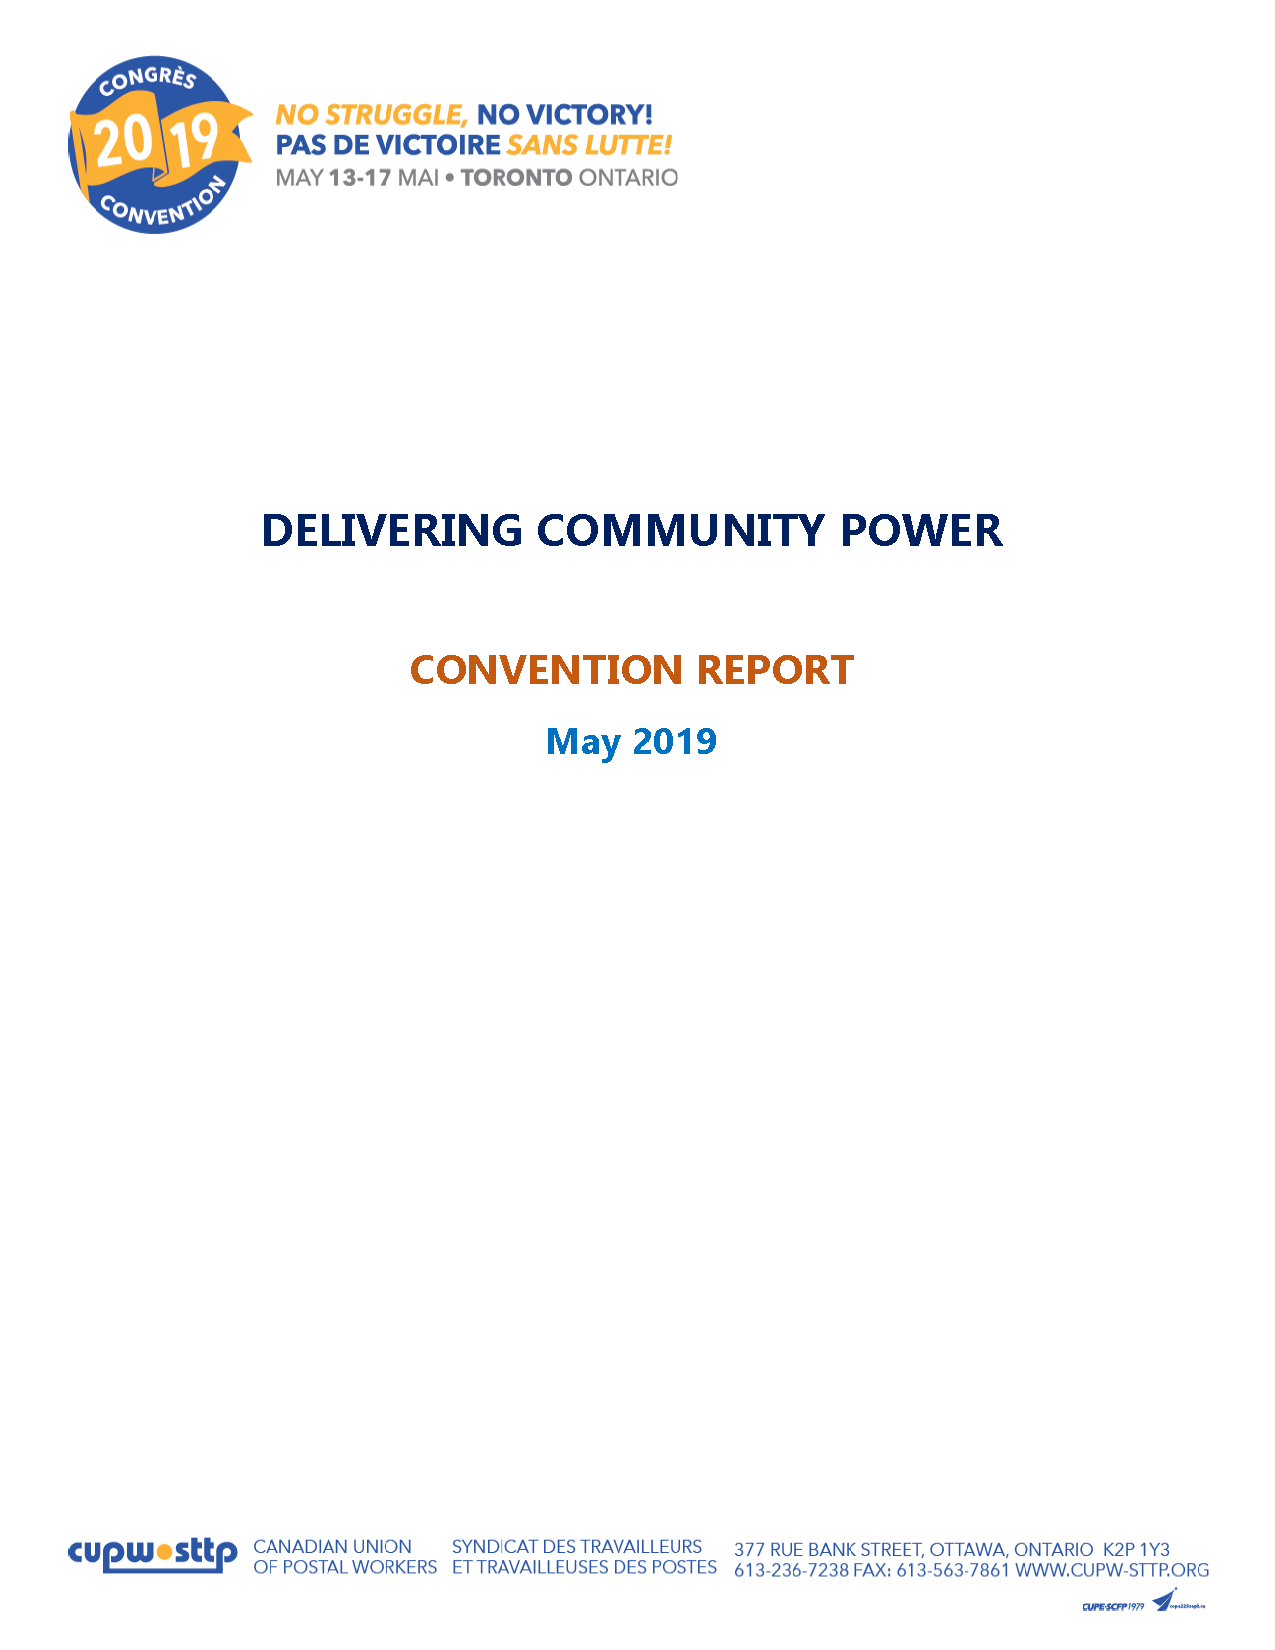 Delivering Community Power - Convention Report (2019)